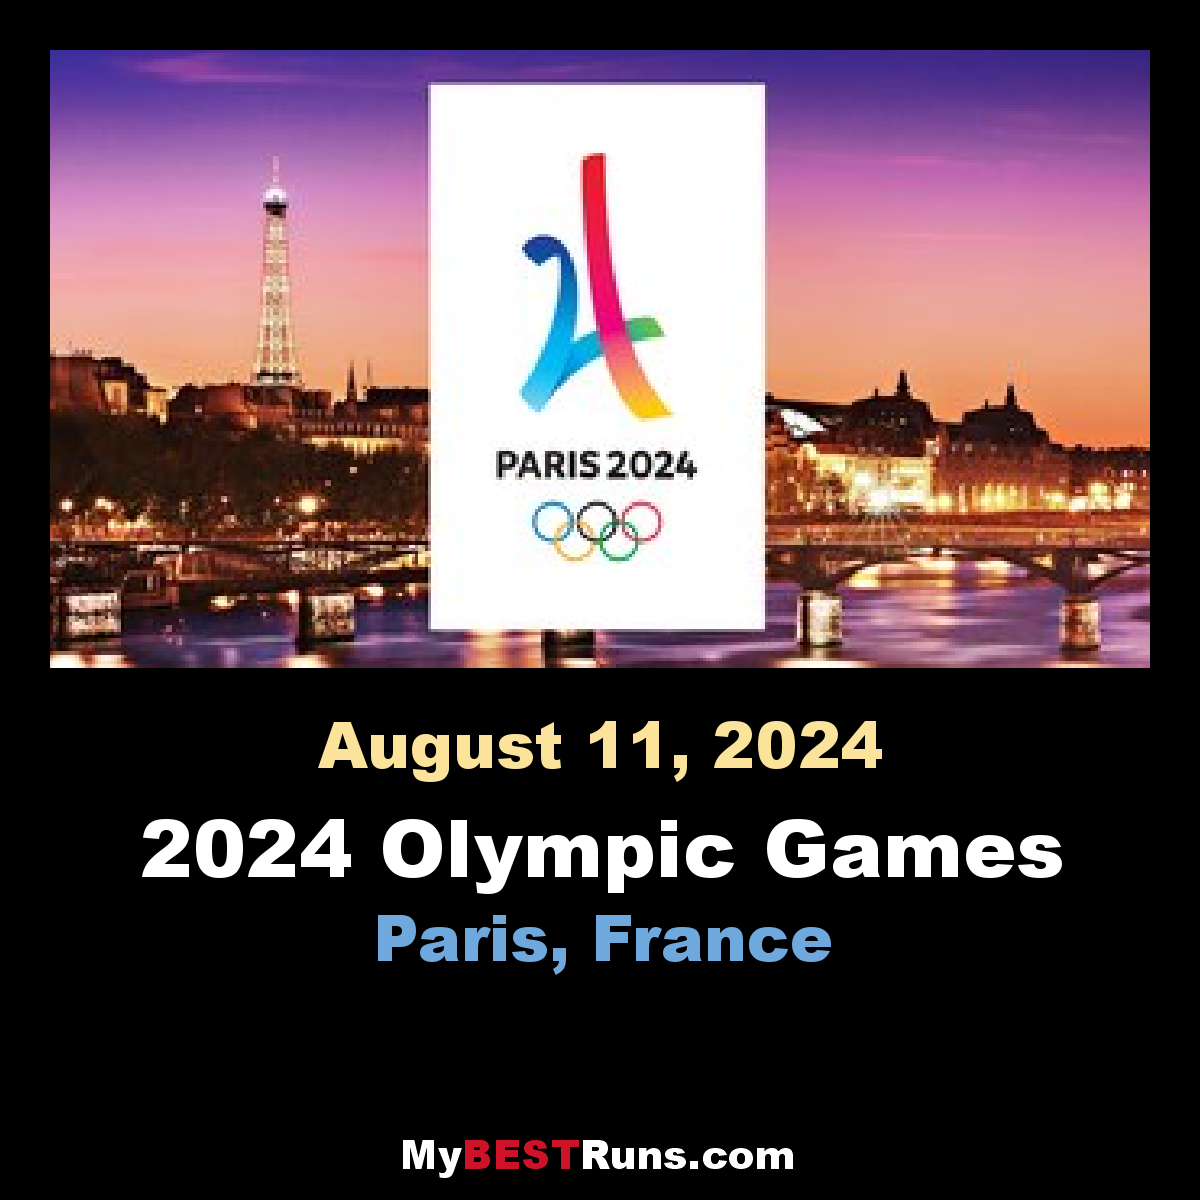 Paris 2024 Olympic Games